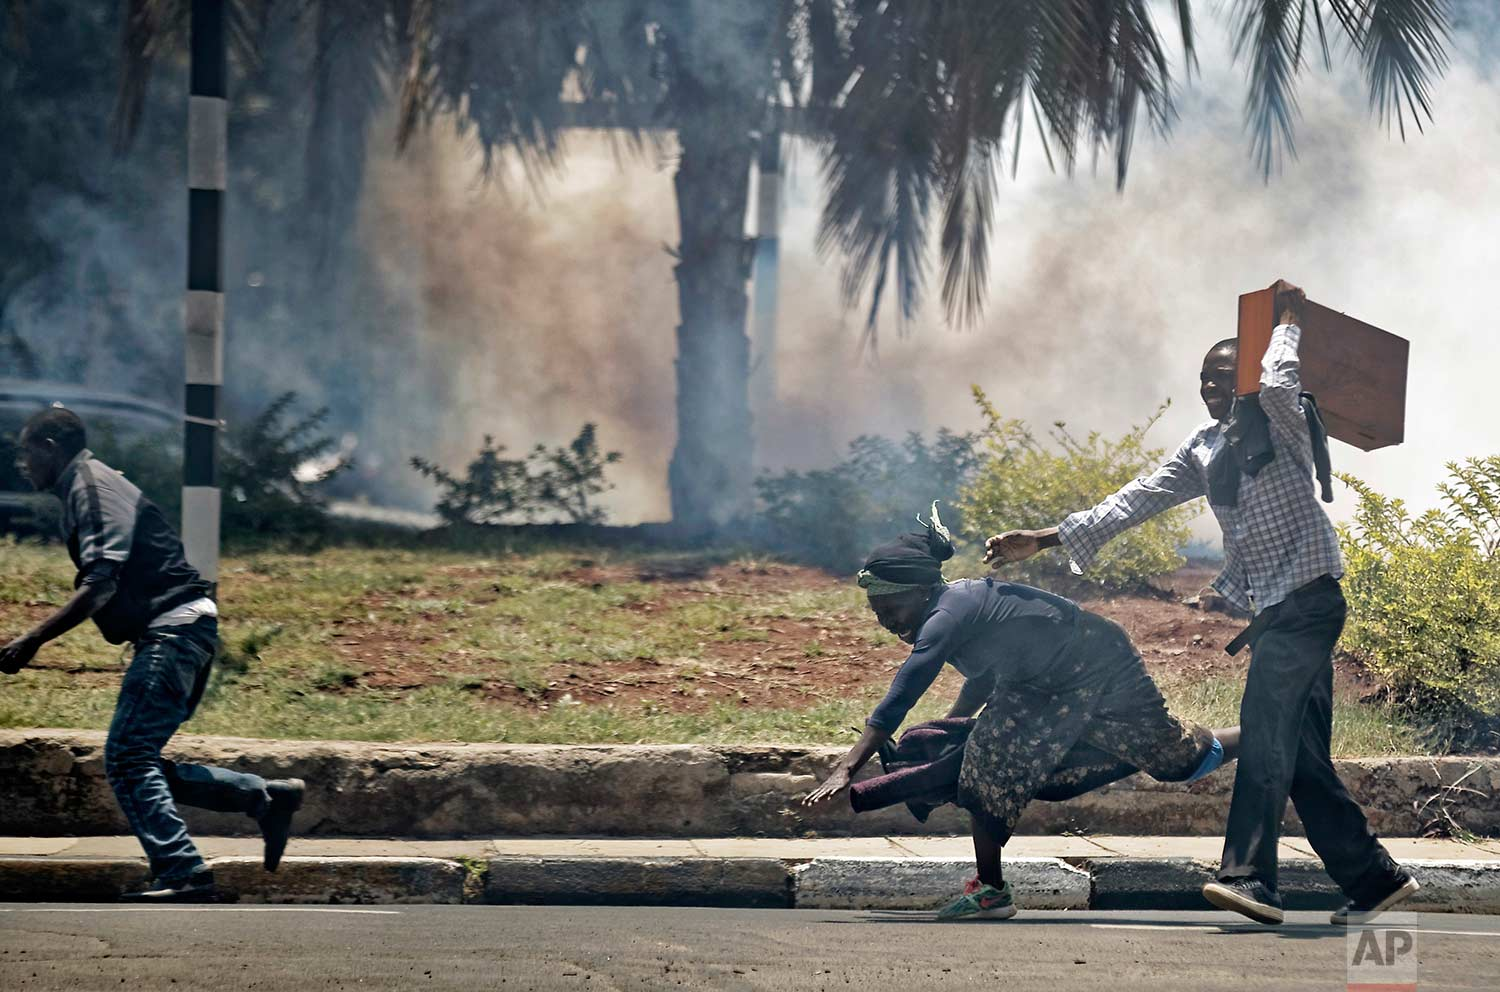 A passerby stumbles to the ground as she and opposition supporters, protesting over the upcoming elections, run for safety amid a cloud of tear gas fired by riot police in downtown Nairobi, Kenya, on Monday, Oct. 16, 2017. (AP Photo/Ben Curtis)